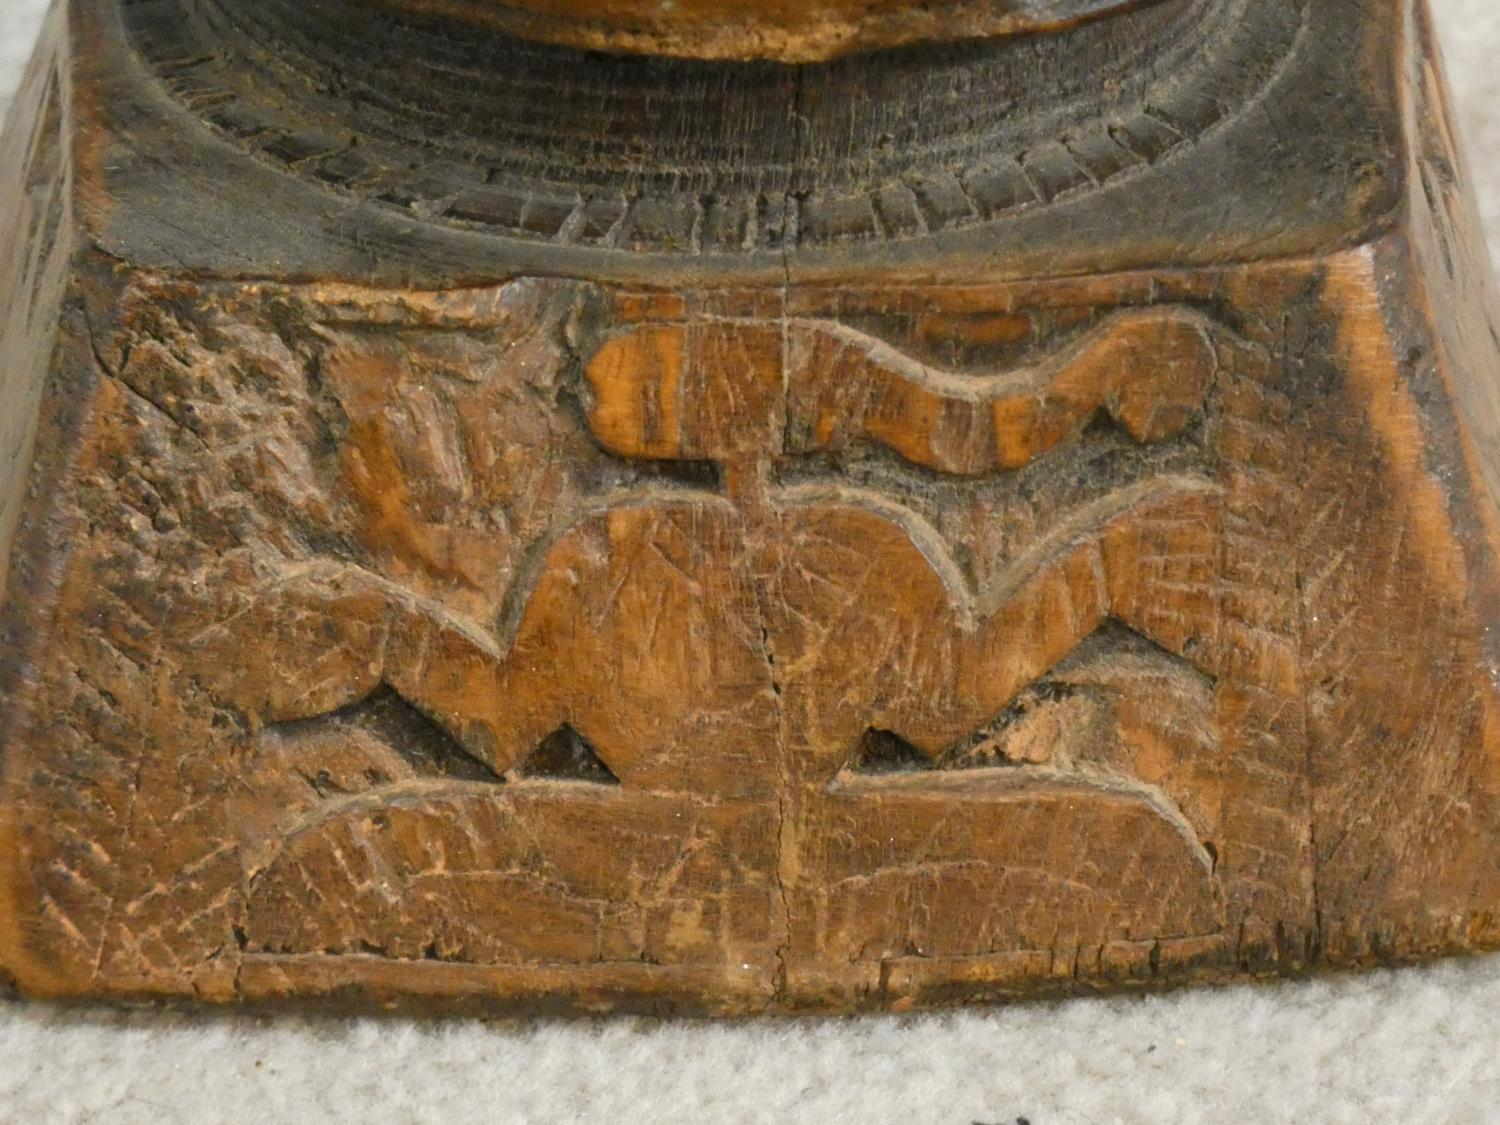 An antique Indian hardwood seed sowing tool with carved detailing of animals and people. H.13 W.17 - Image 7 of 8